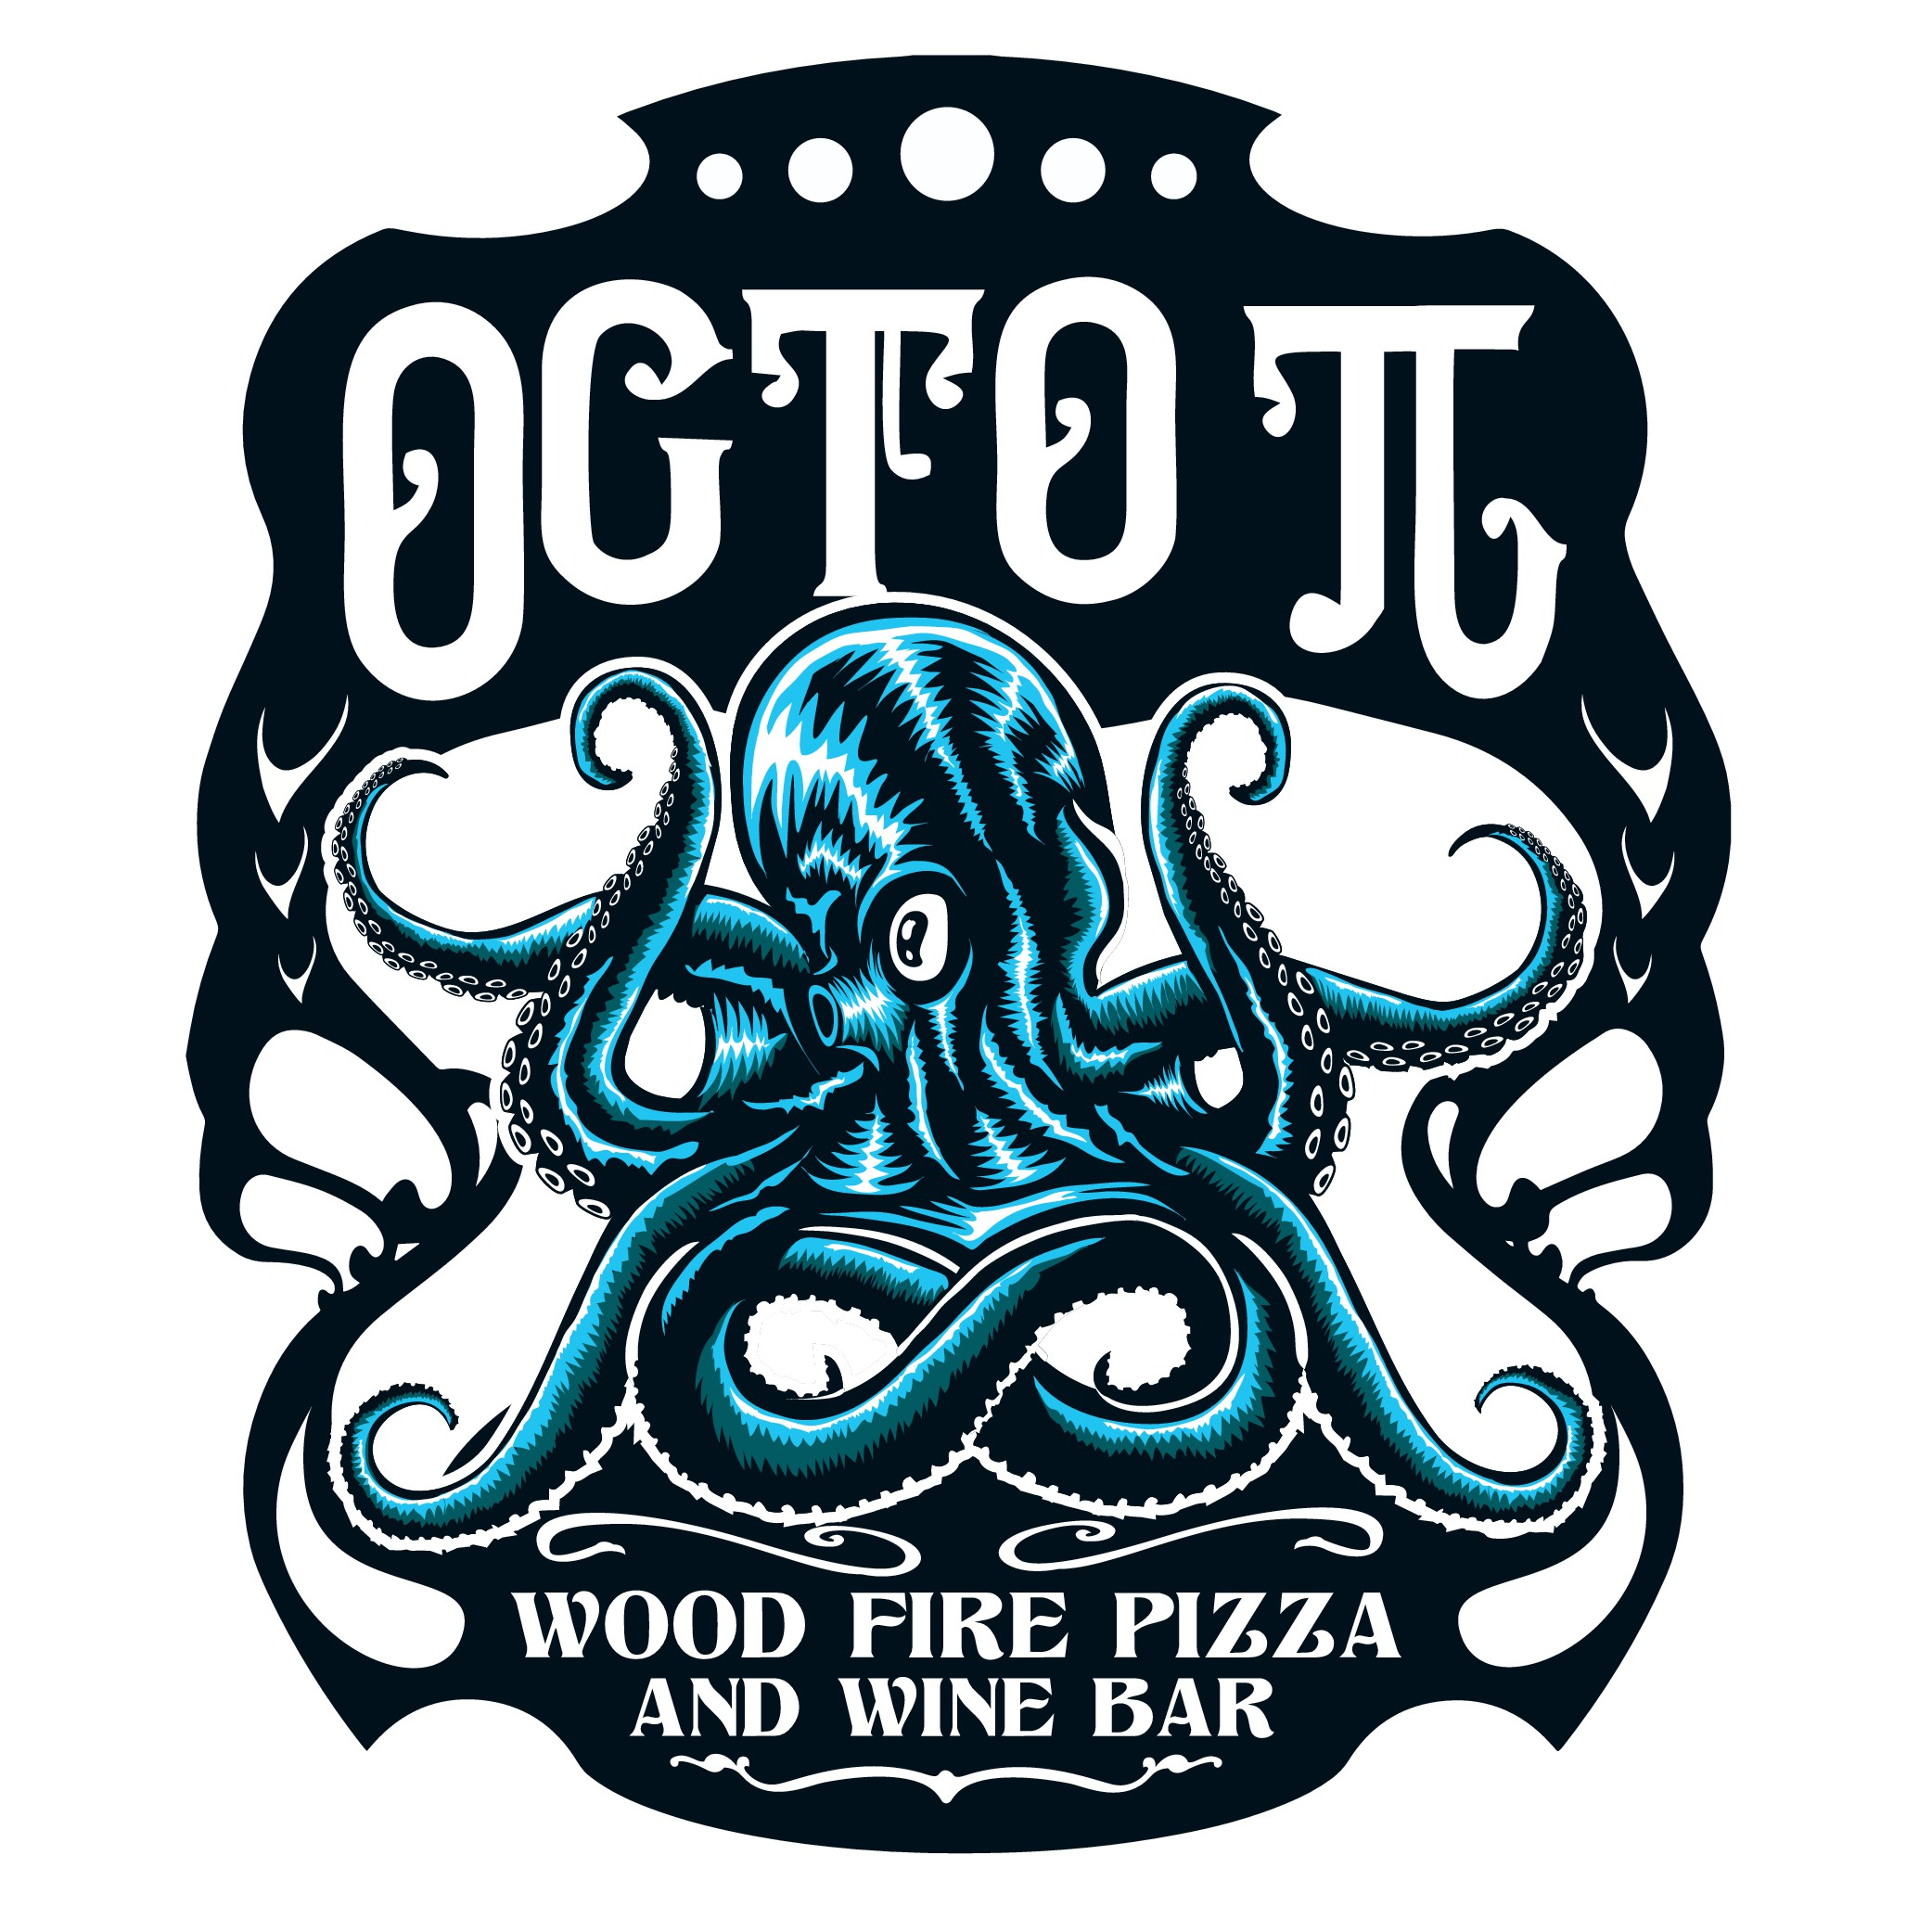 Octo π needs an octopus illustration to draw the masses